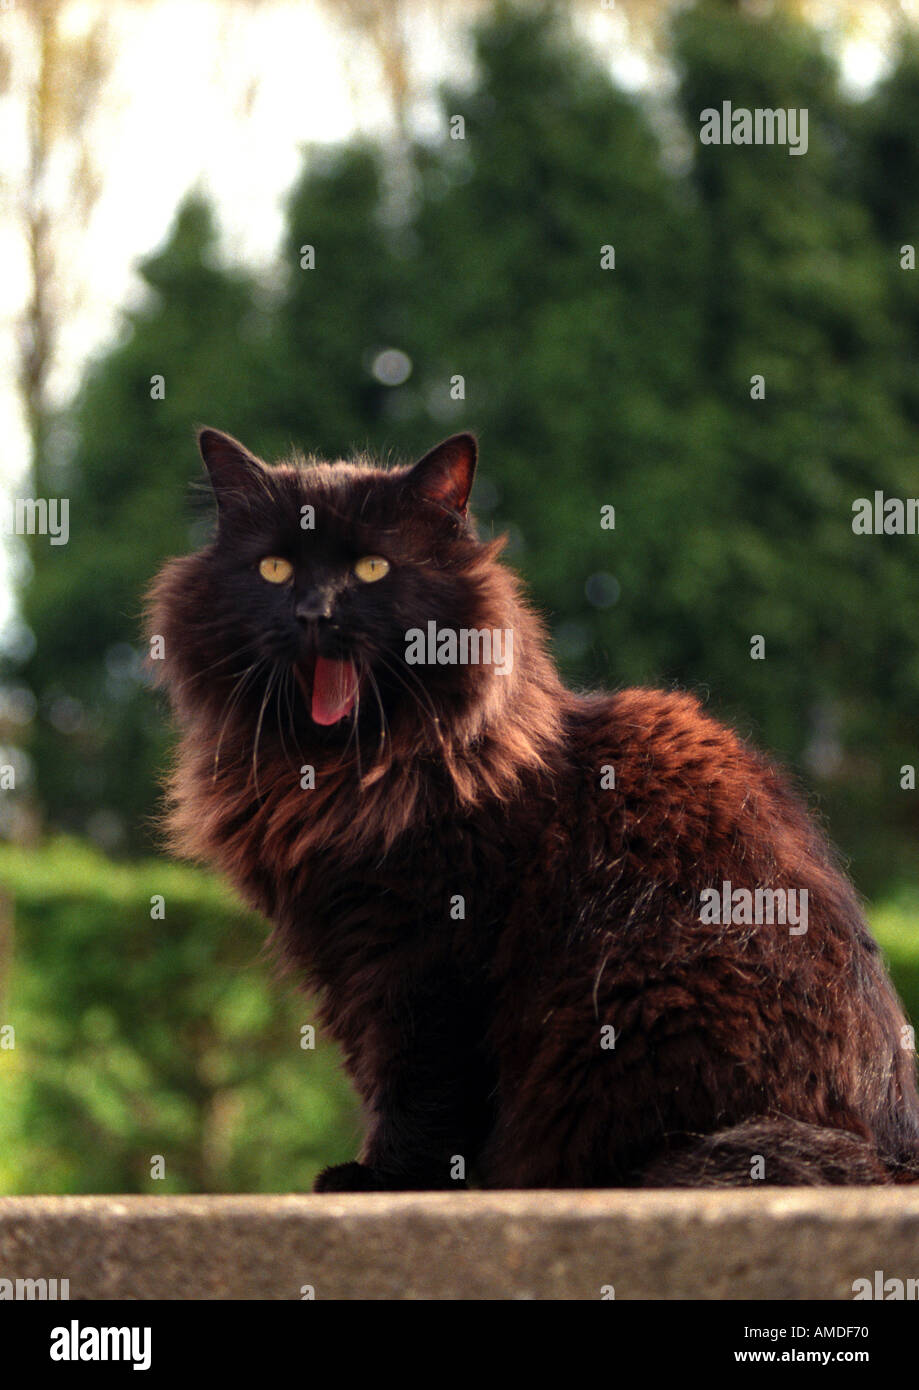 A Fluffy Black Cat Sat On A Wall Yawning Stock Photo 1367919 Alamy